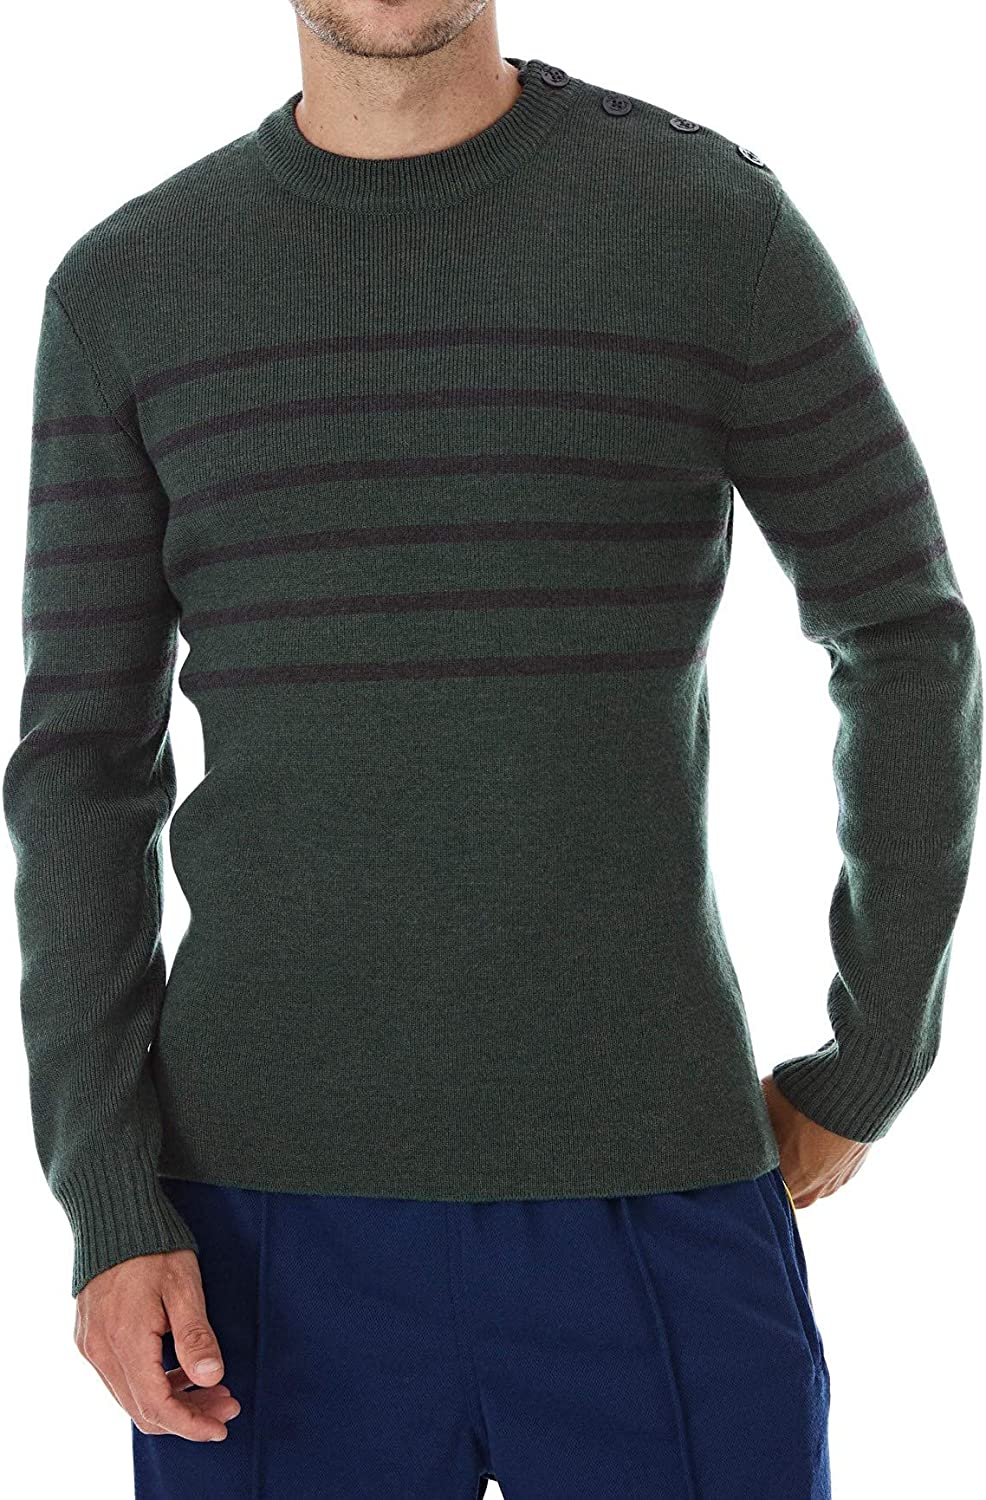 Lello Men Japan Maker New Knitted Popular brand Wool Blend Buttoned Essent Sweater Sustainable